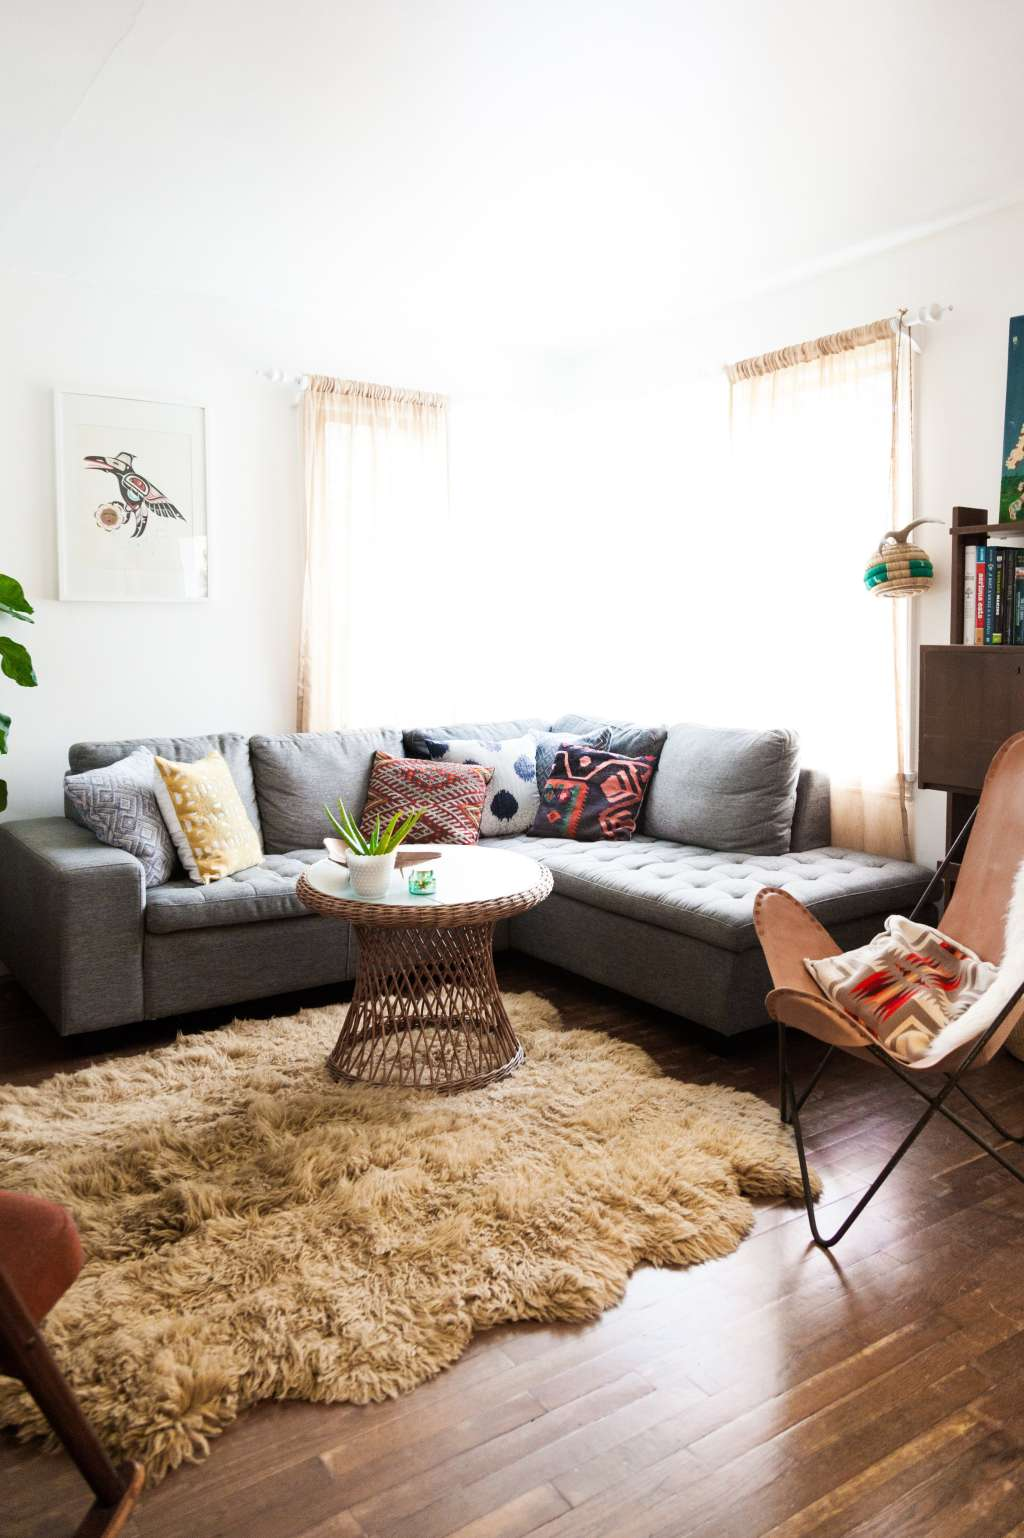 House Tour: An Oaxacan-Inspired Rental in Seattle